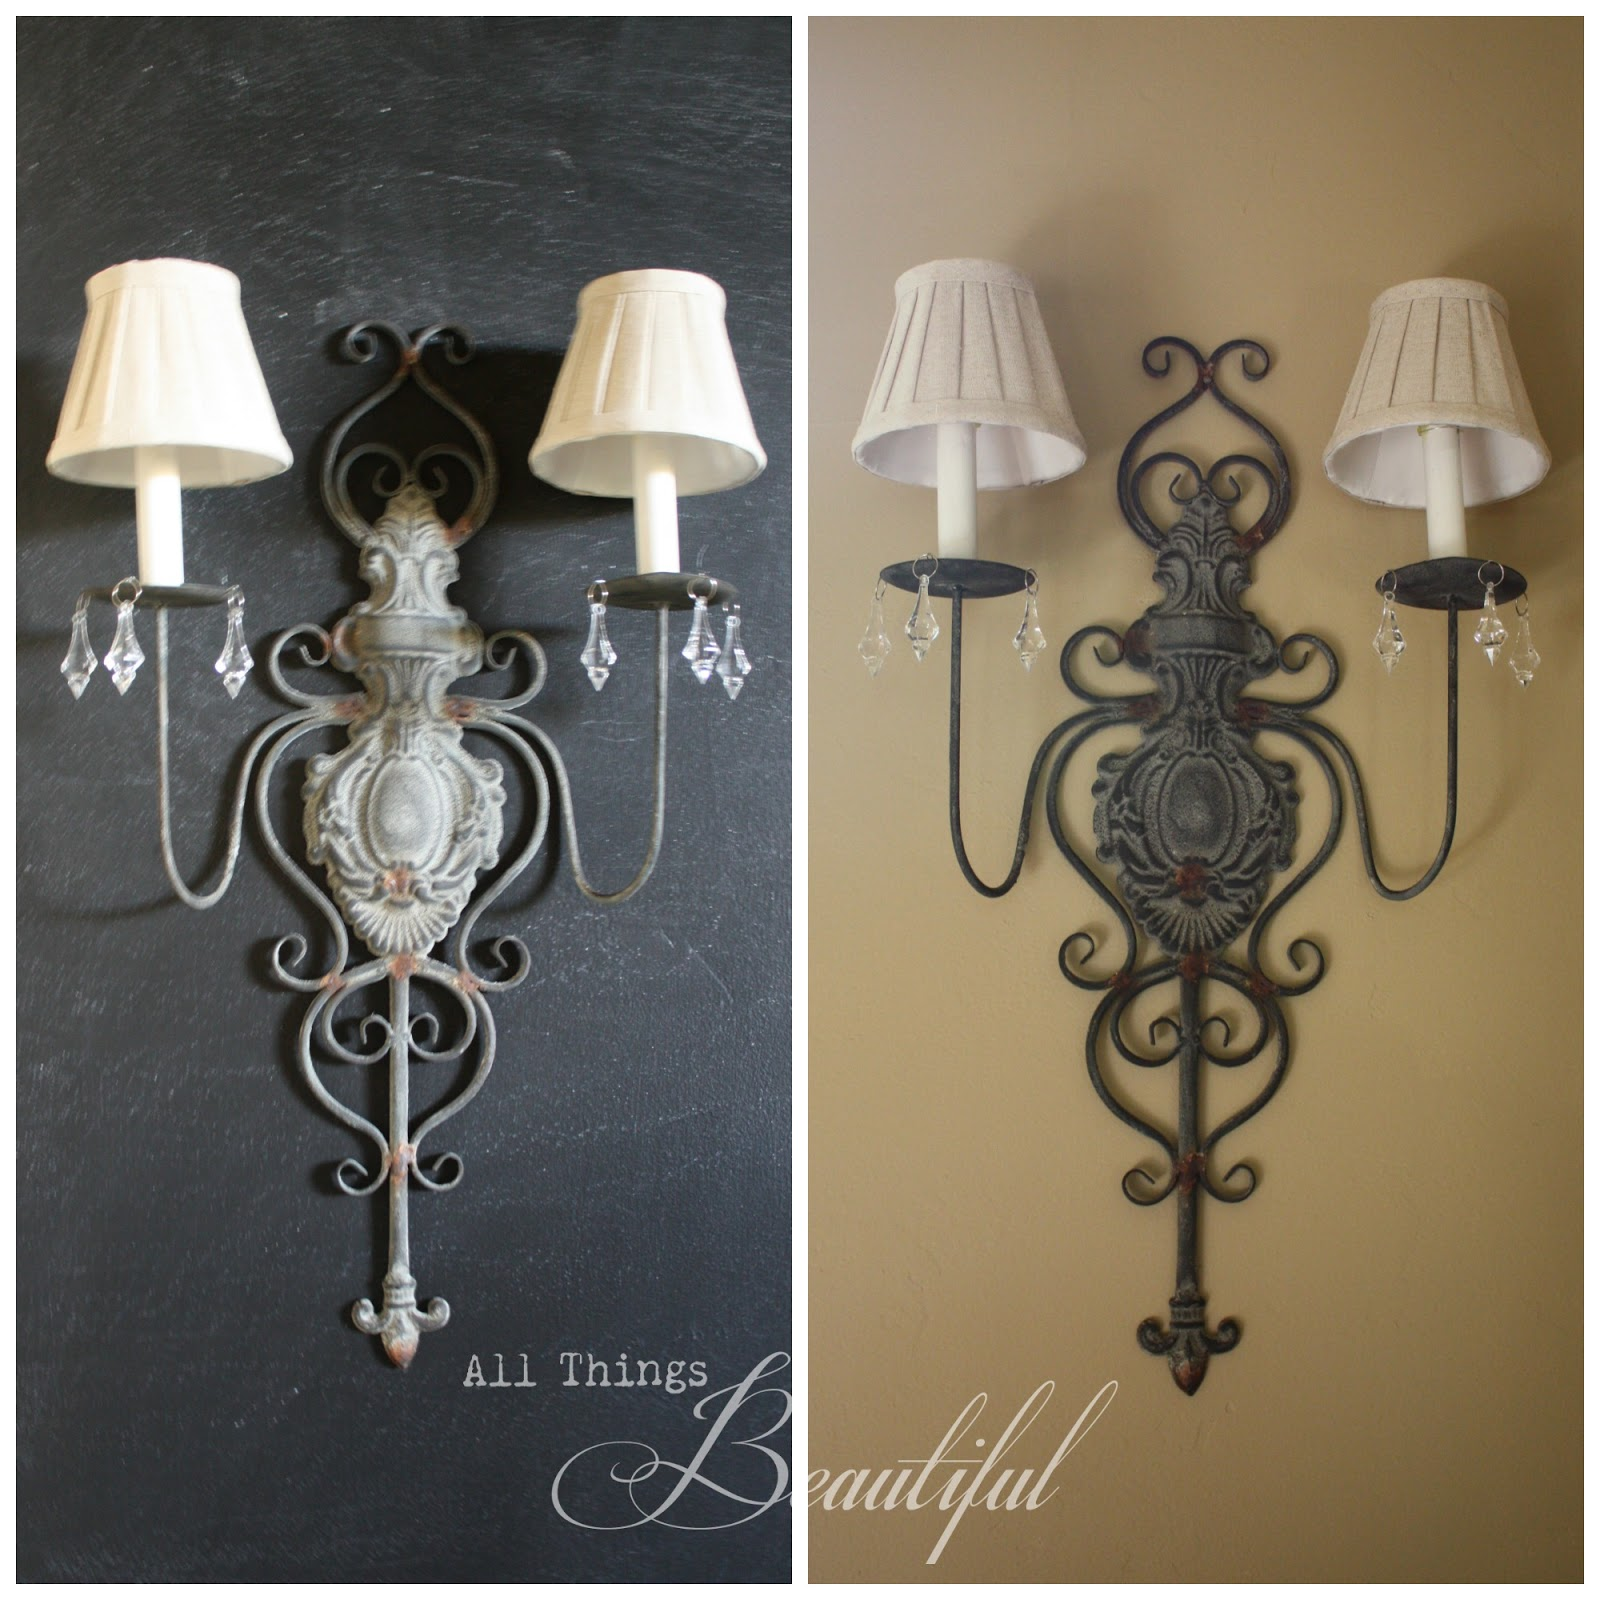 Diy Wall Sconces For Candles : All Things Beautiful: Embellish {Candle Sconce} DIY